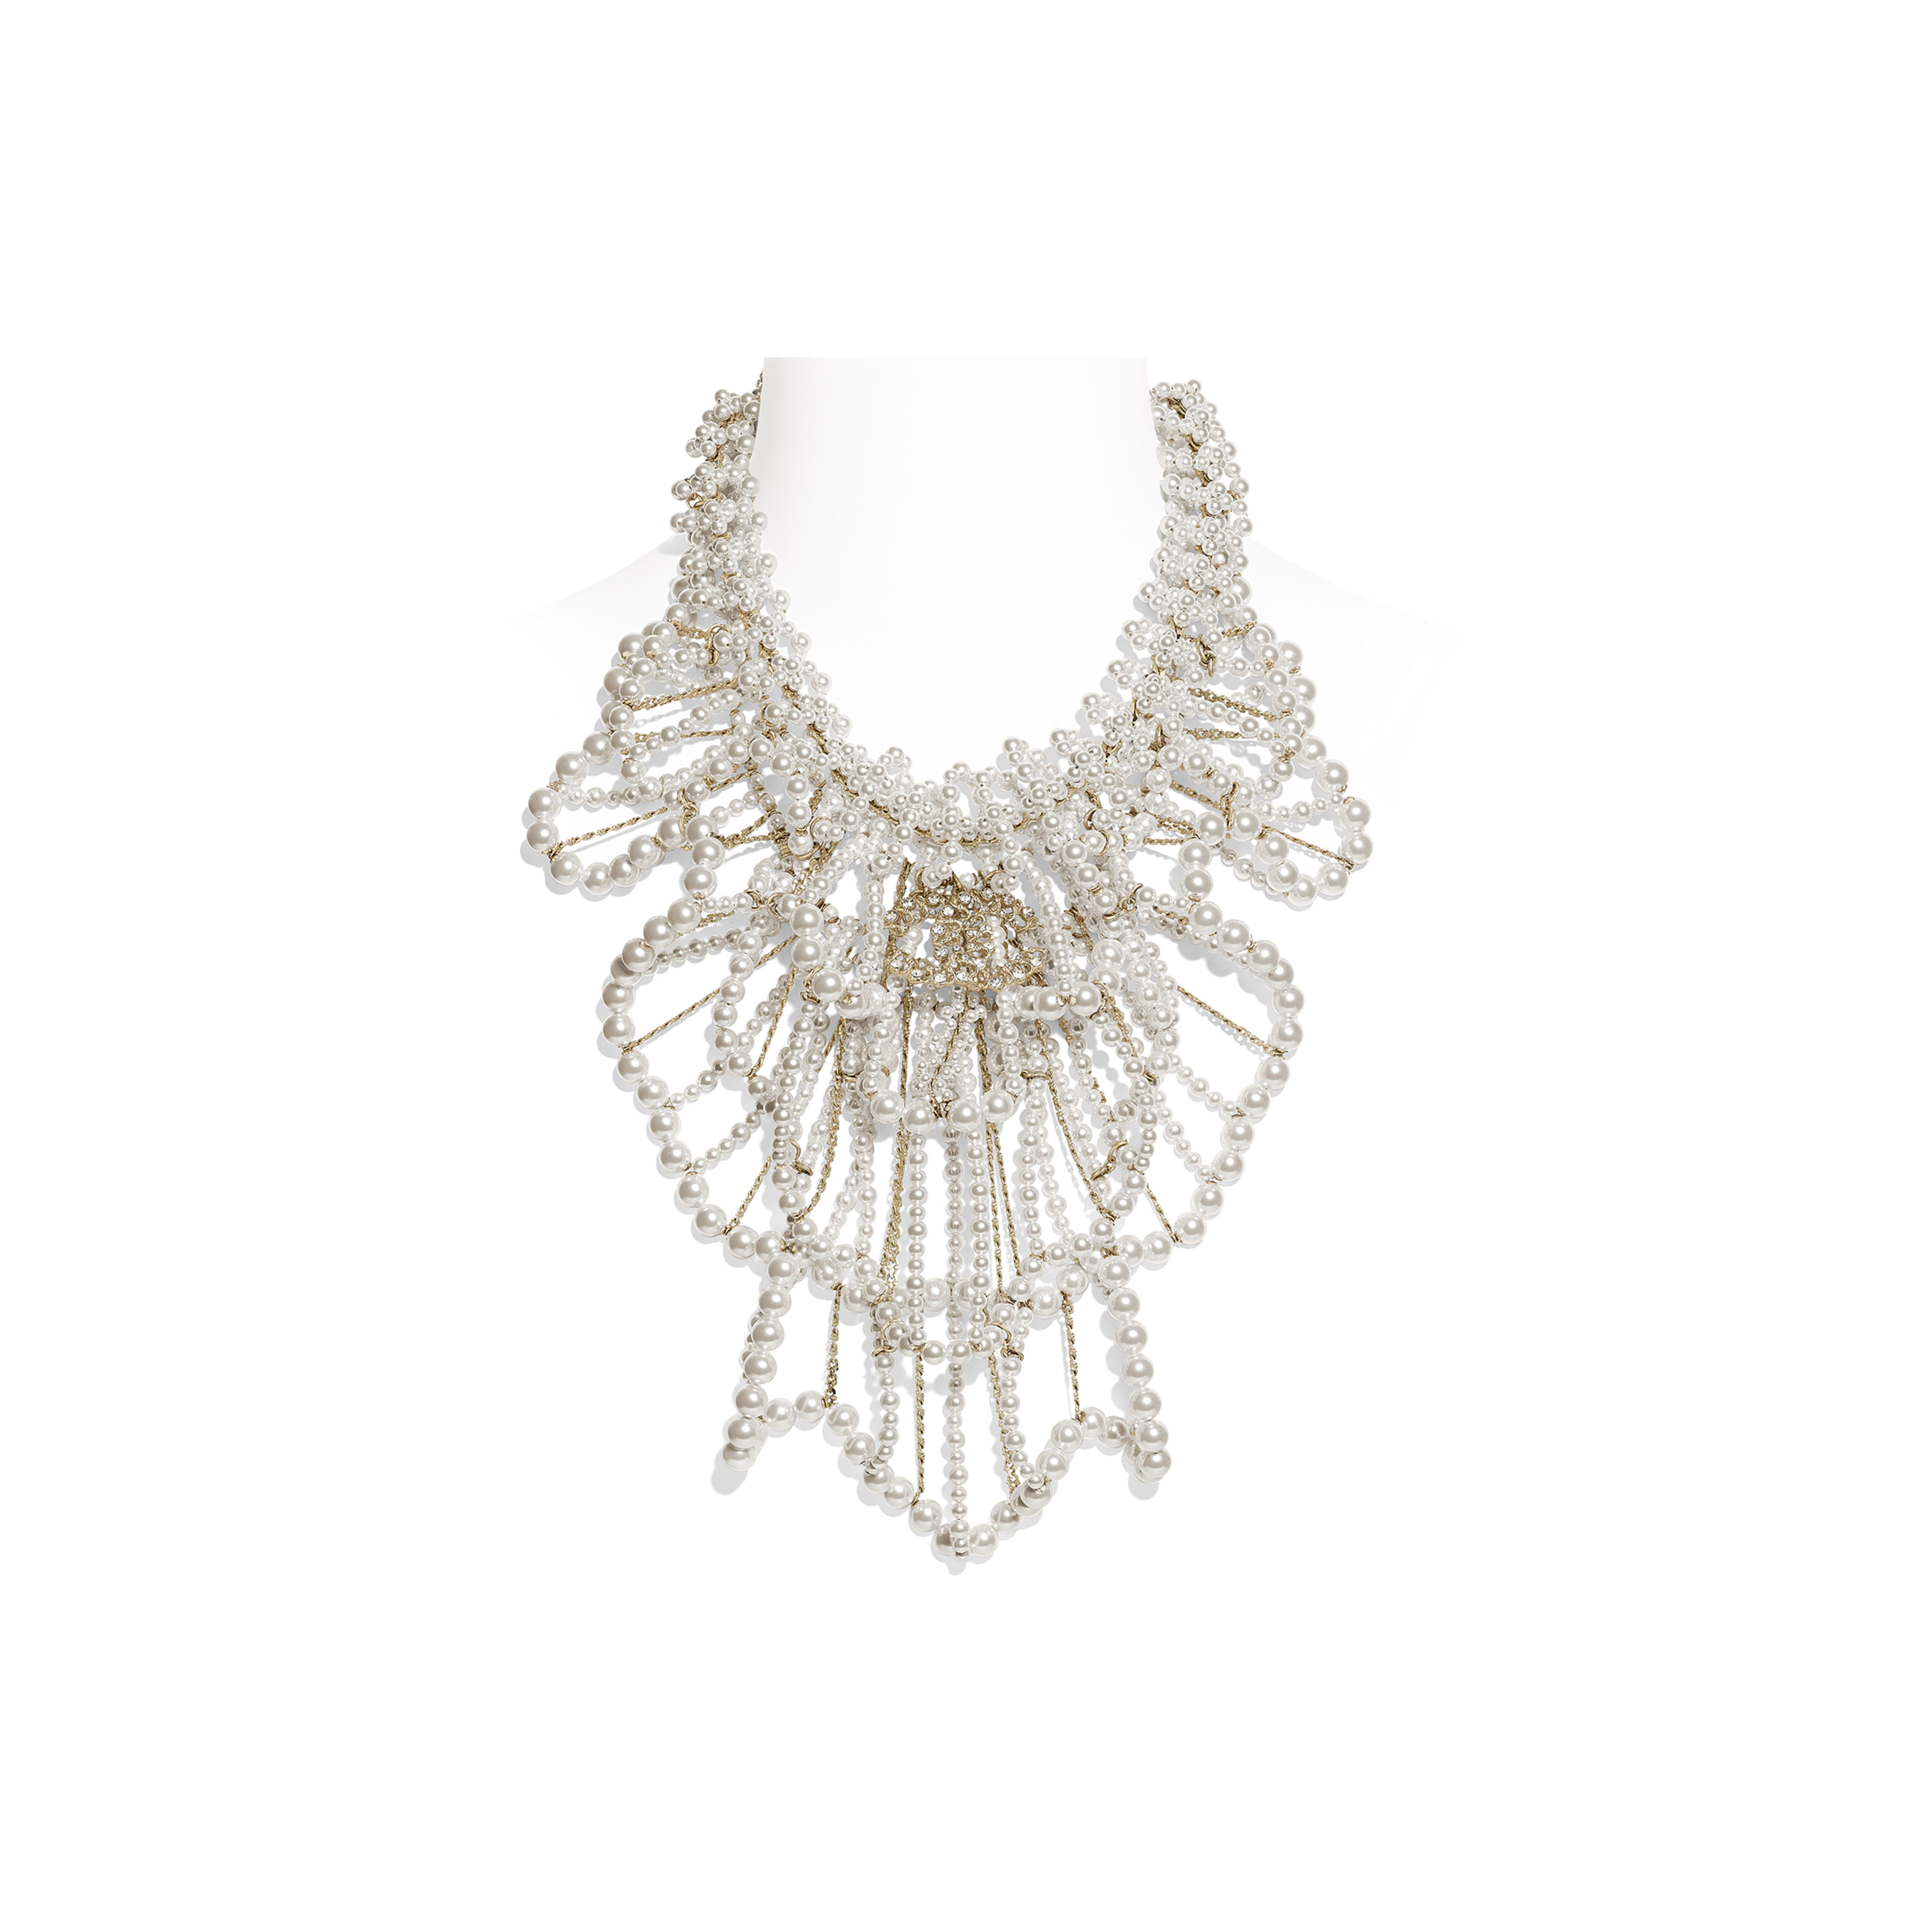 Necklace - Gold, Pearly White & Crystal - Metal, Glass Pearls & Diamantés - Default view - see full sized version